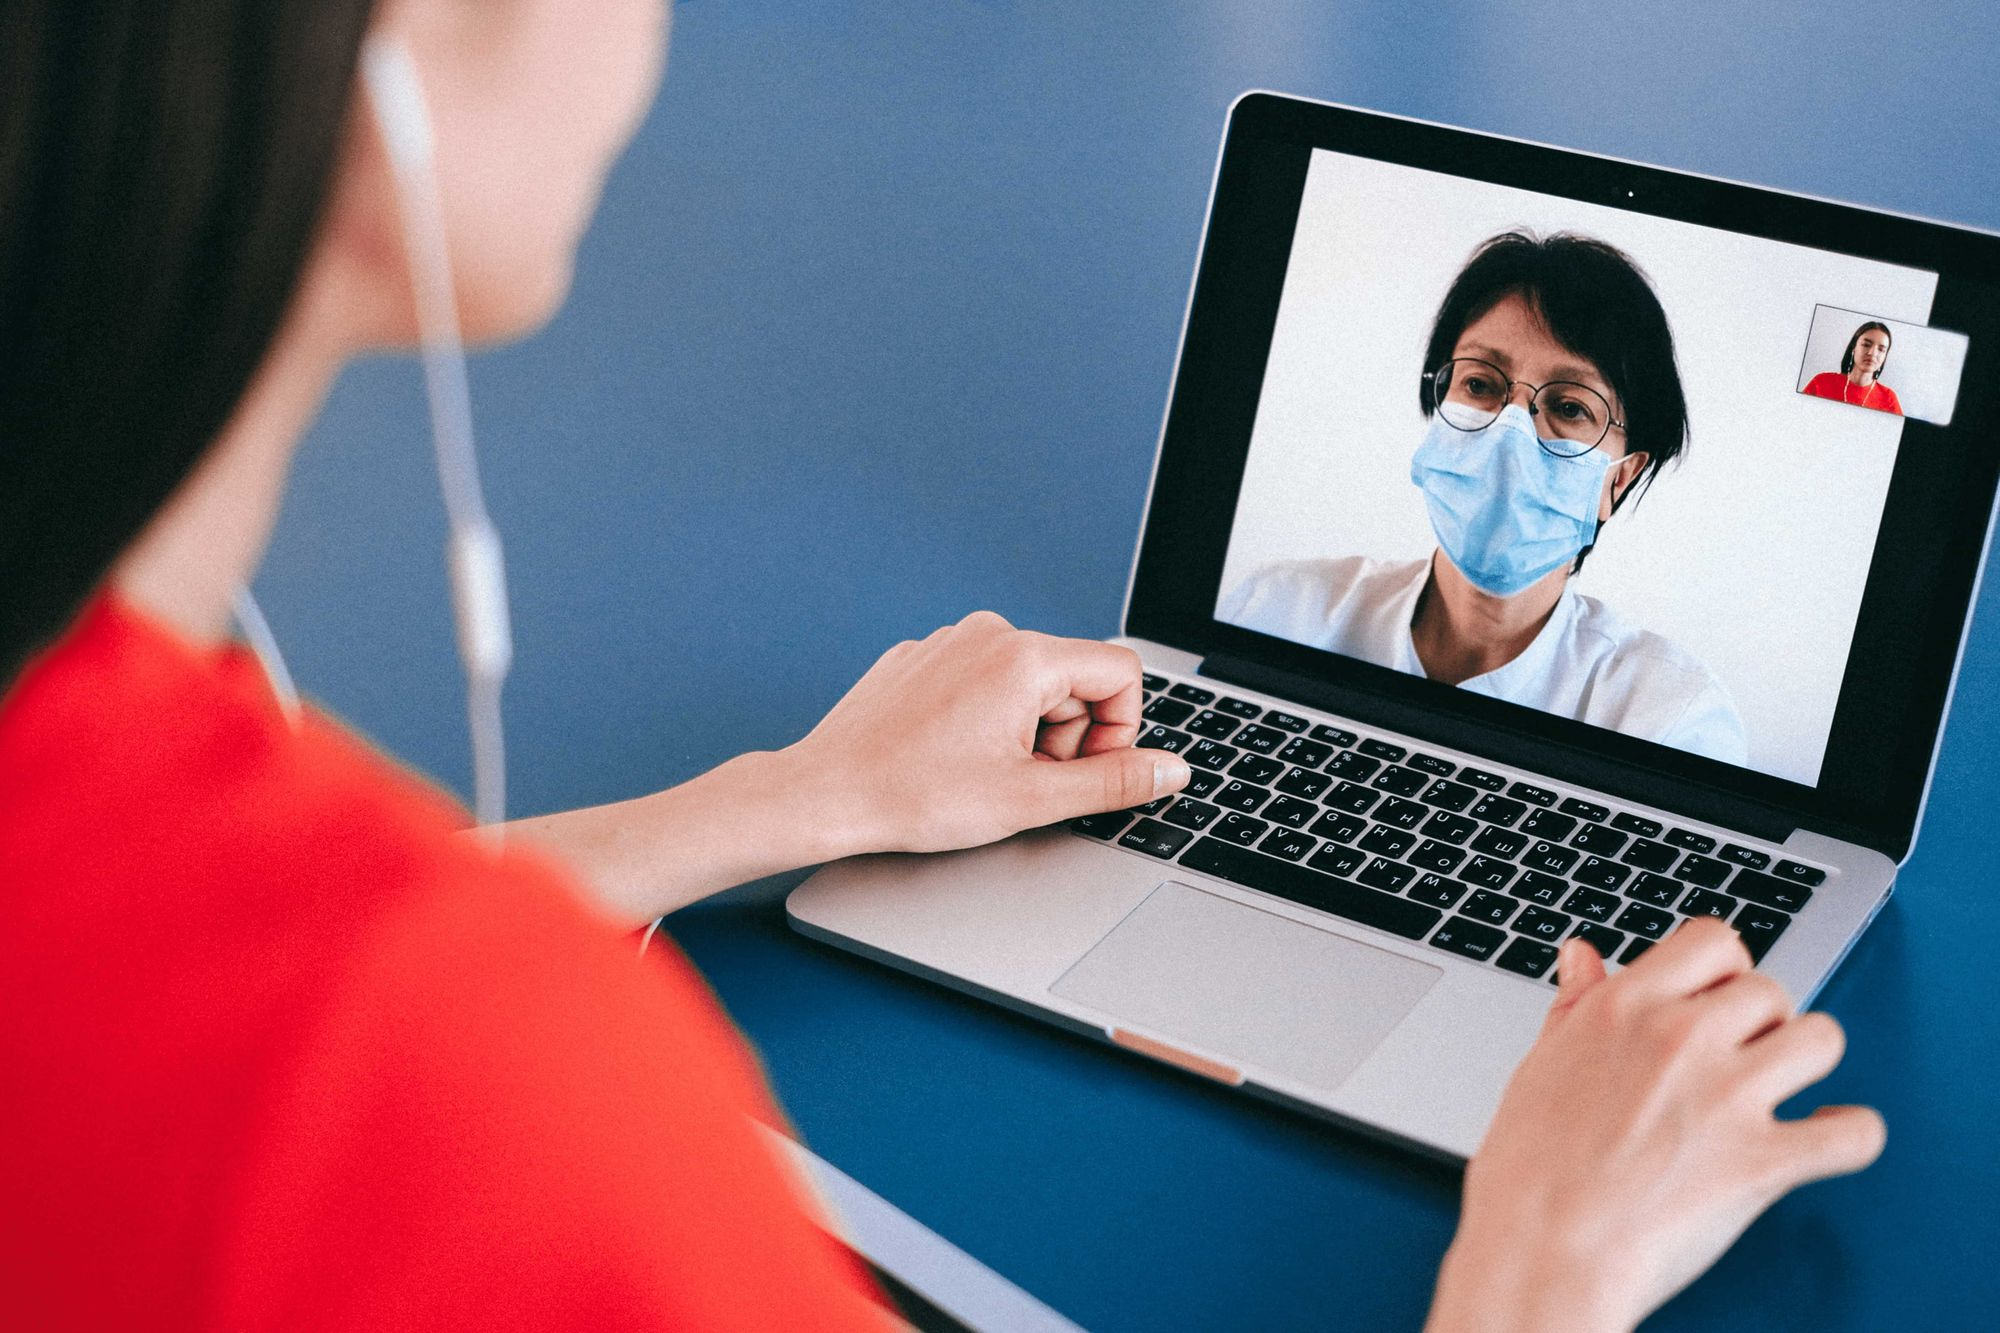 A patient consulting with her doctor through a video conference meeting